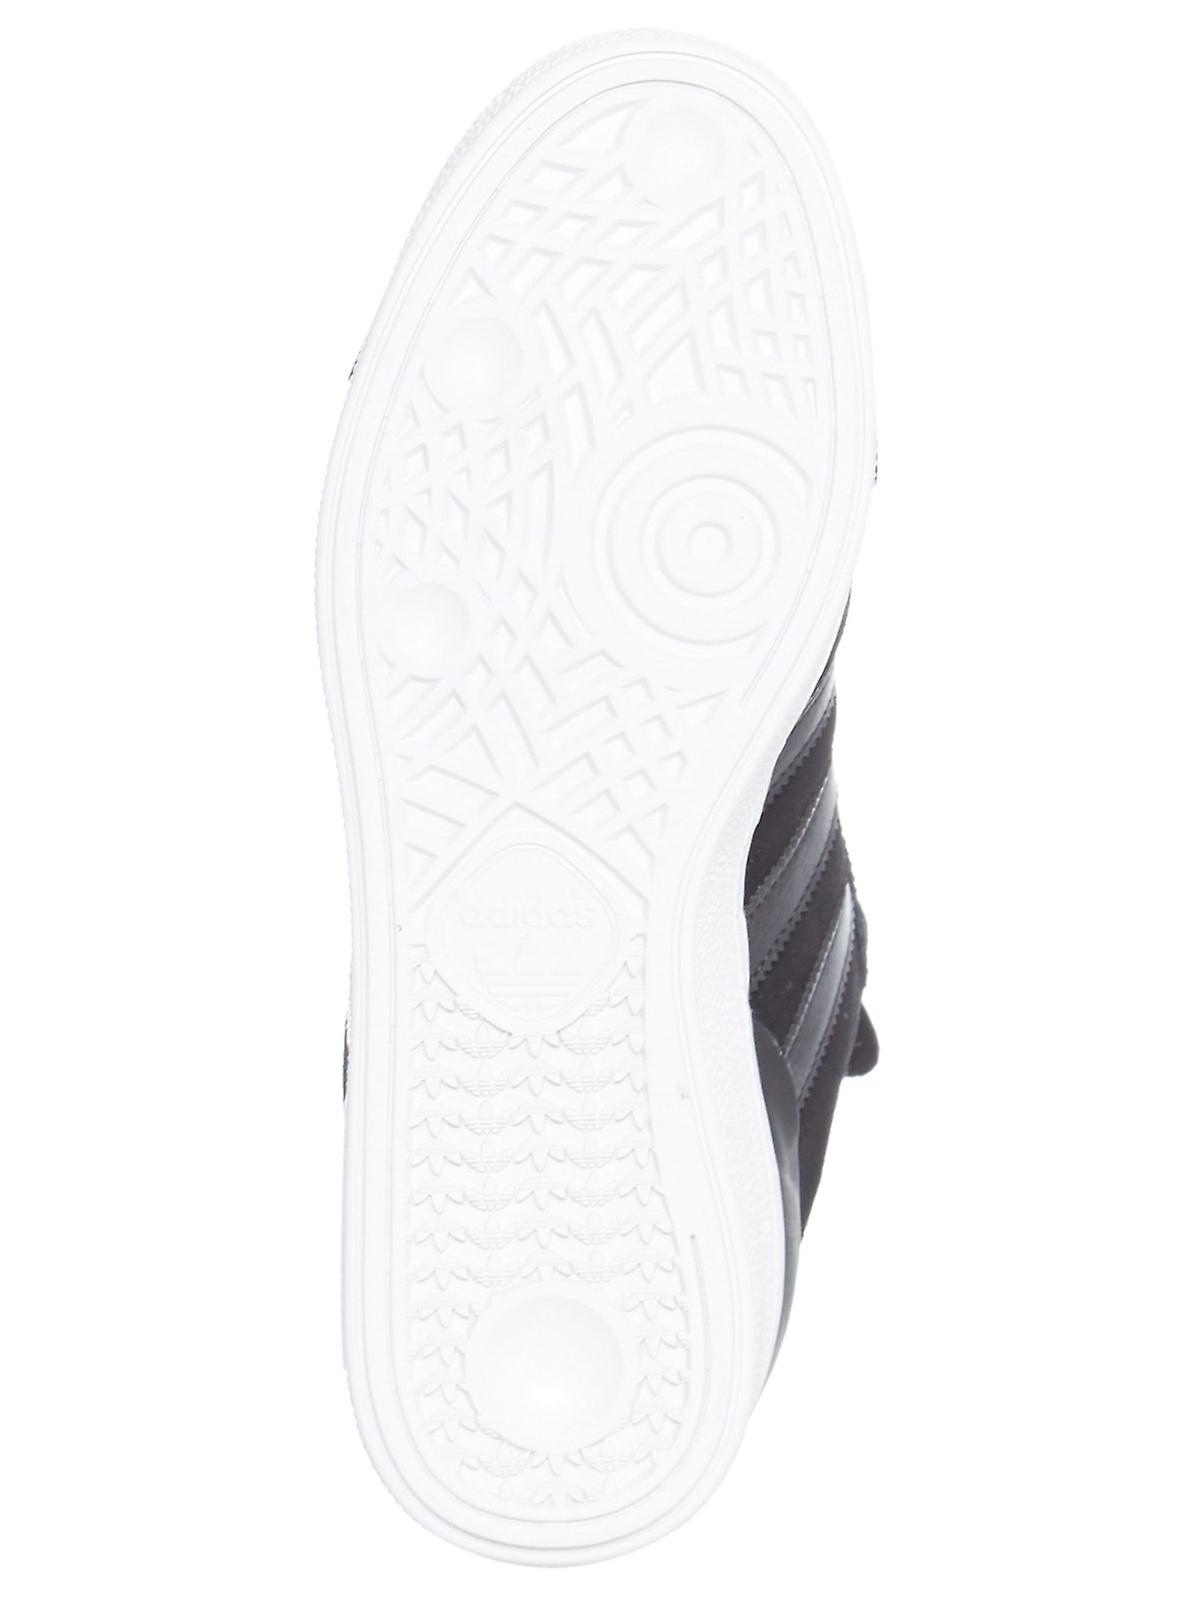 Adidas Core Black-Footwear White Busenitz Shoe